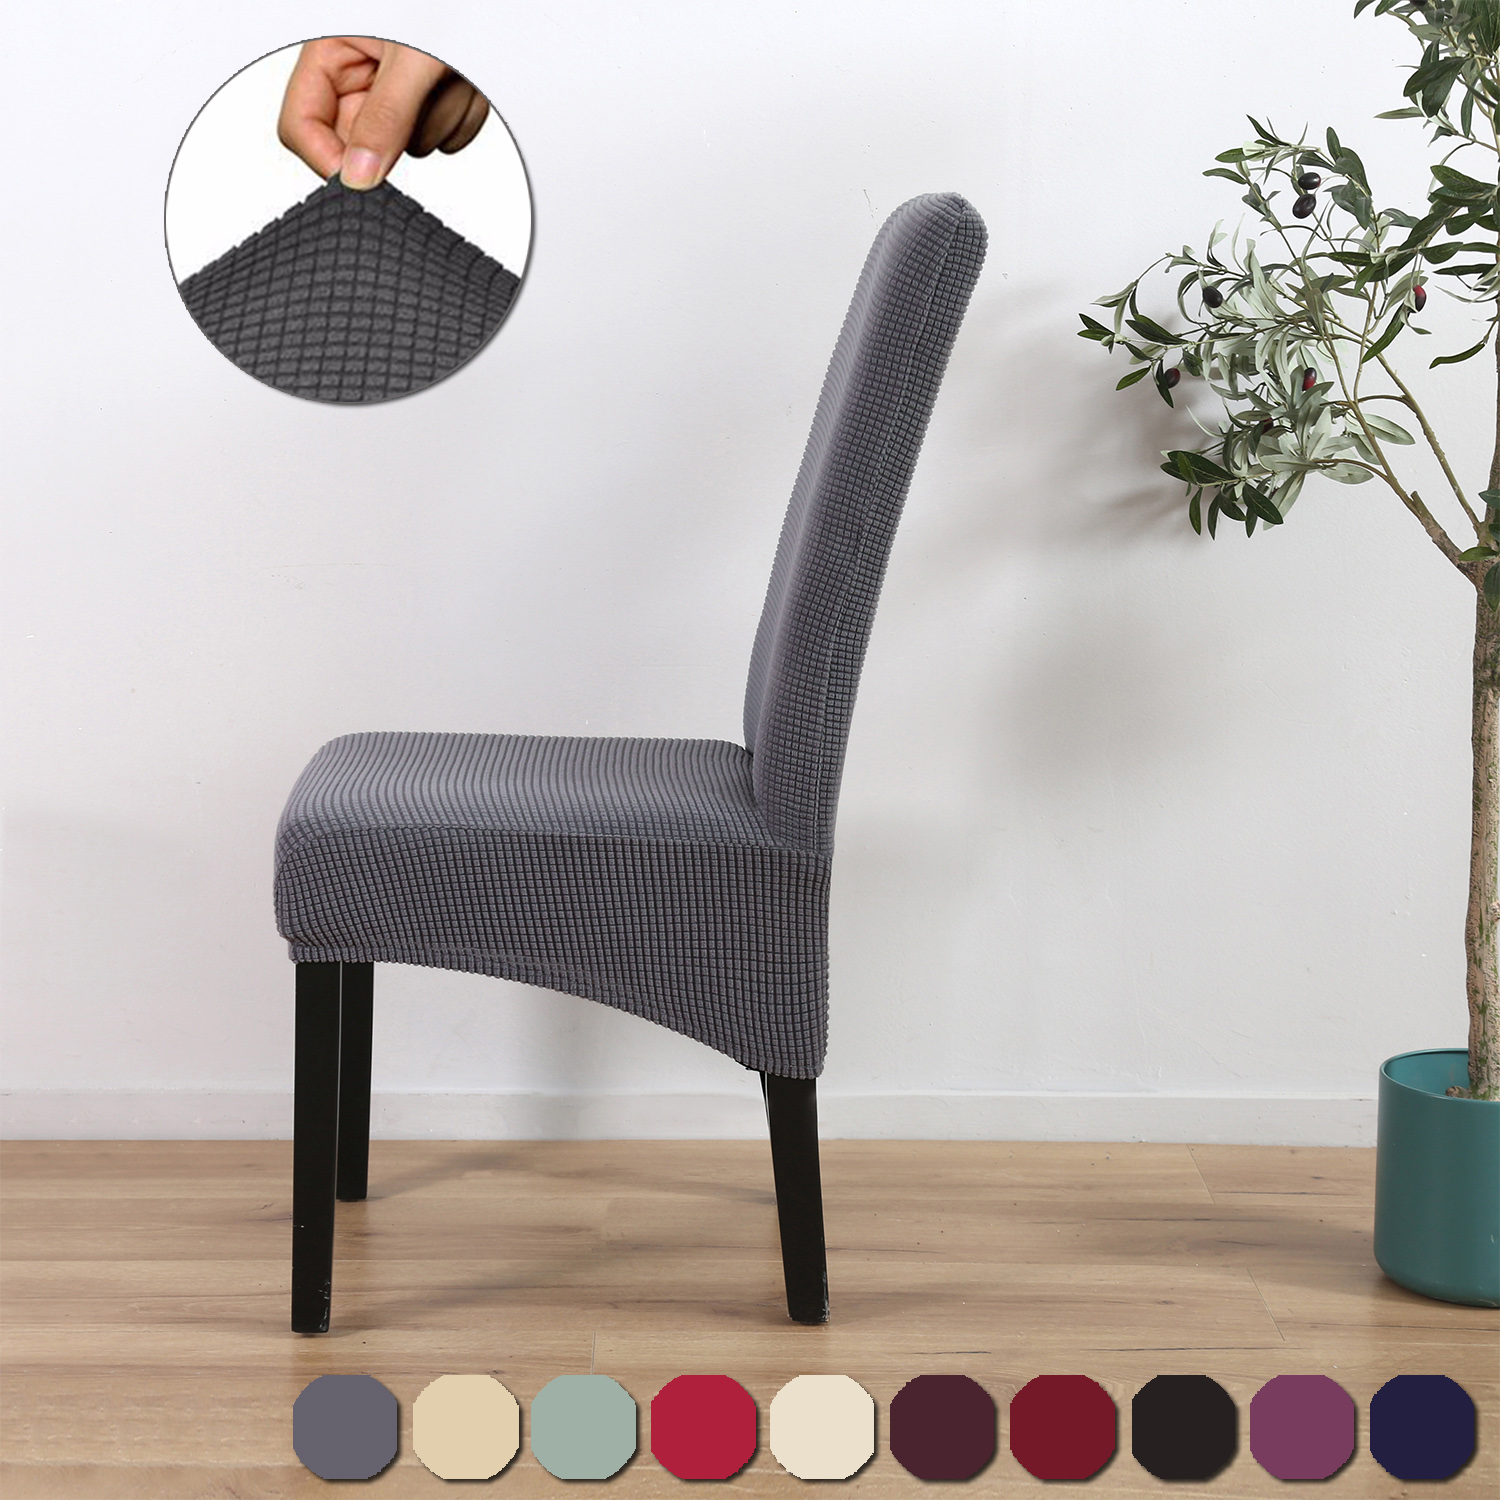 Pleasing Details About 1 8Pcs Dining Chair Covers Spandex Slip Cover Stretch Wedding Banquet Party Deco Creativecarmelina Interior Chair Design Creativecarmelinacom